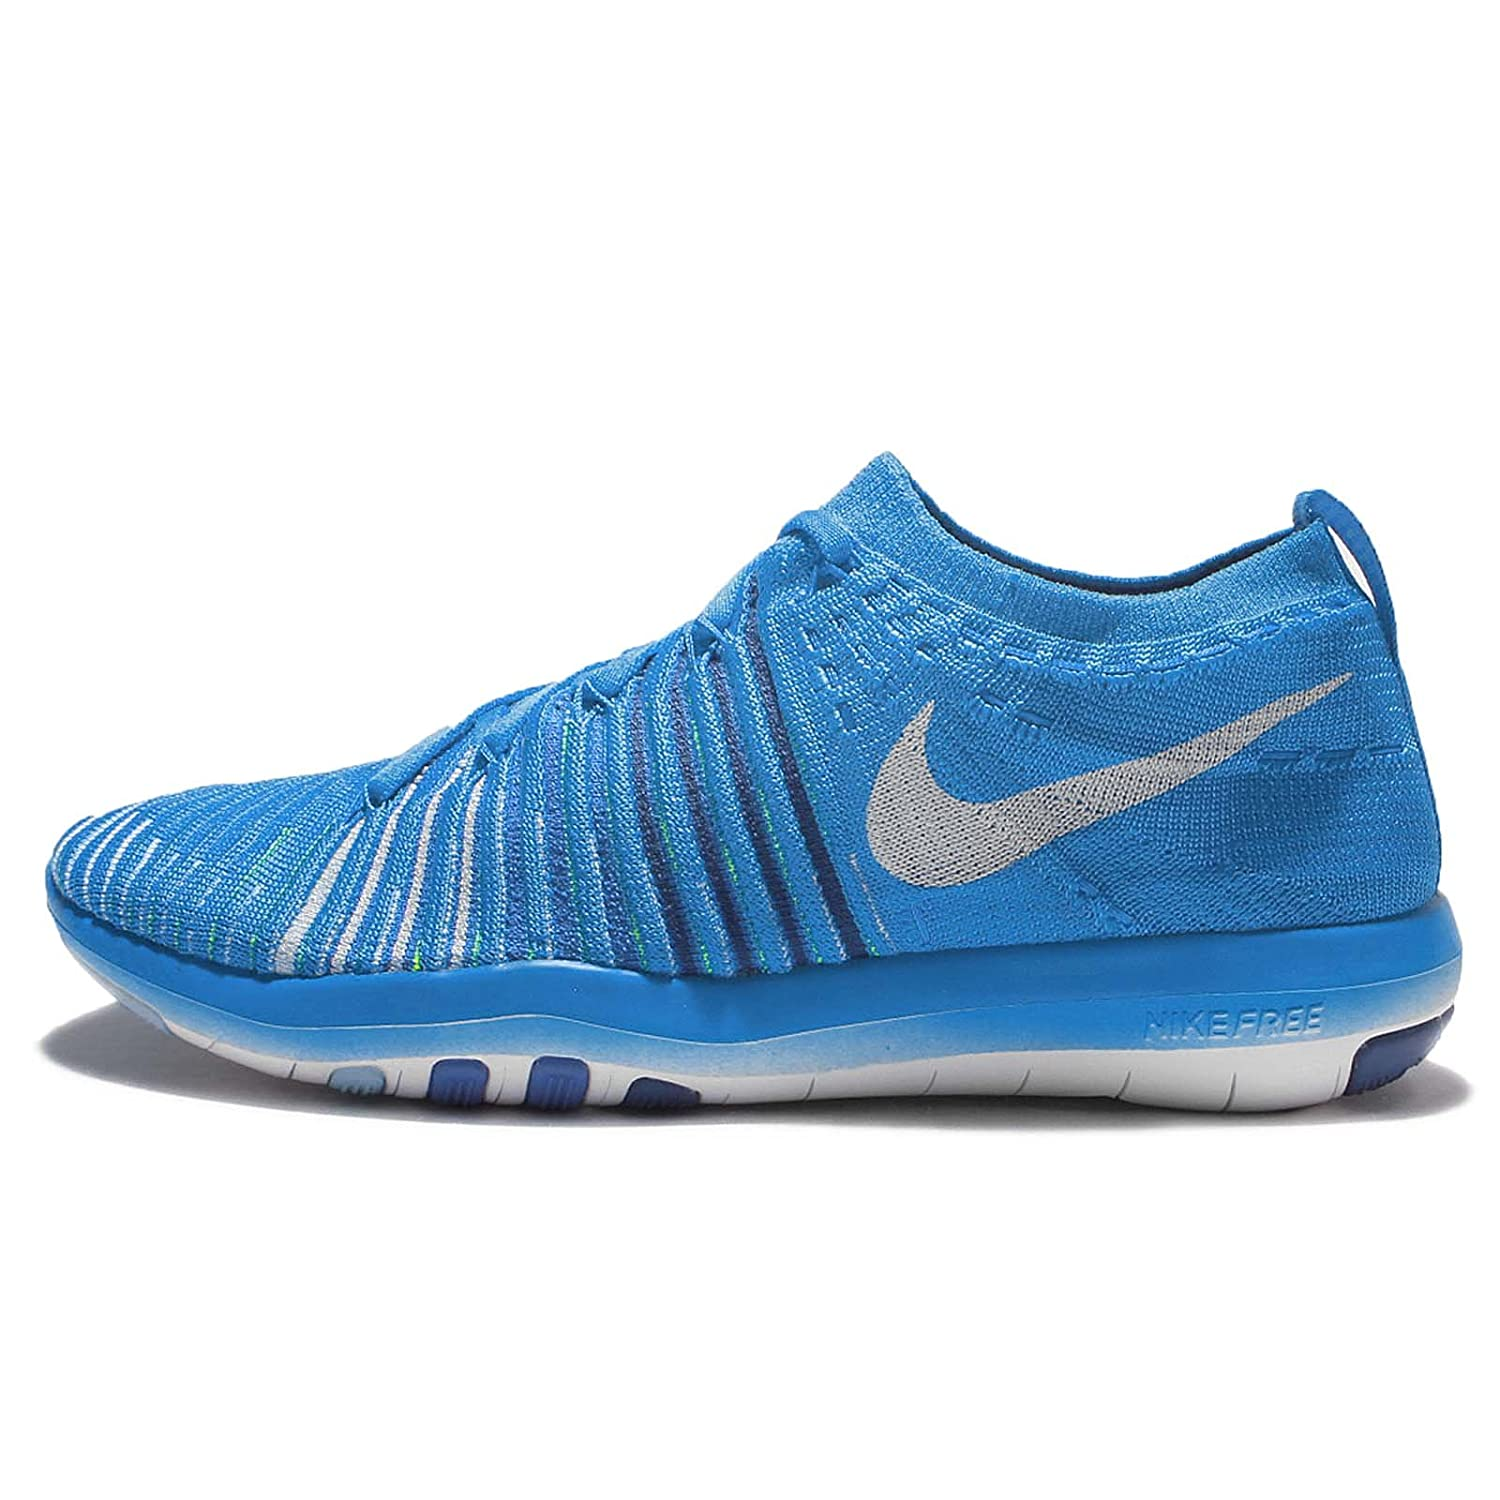 NIKE Womens Free Focus Flyknit Mesh Breathable Trainers B01I0SE71G 9.5 B(M) US|Blue Glow/White/Deep Royal Blue